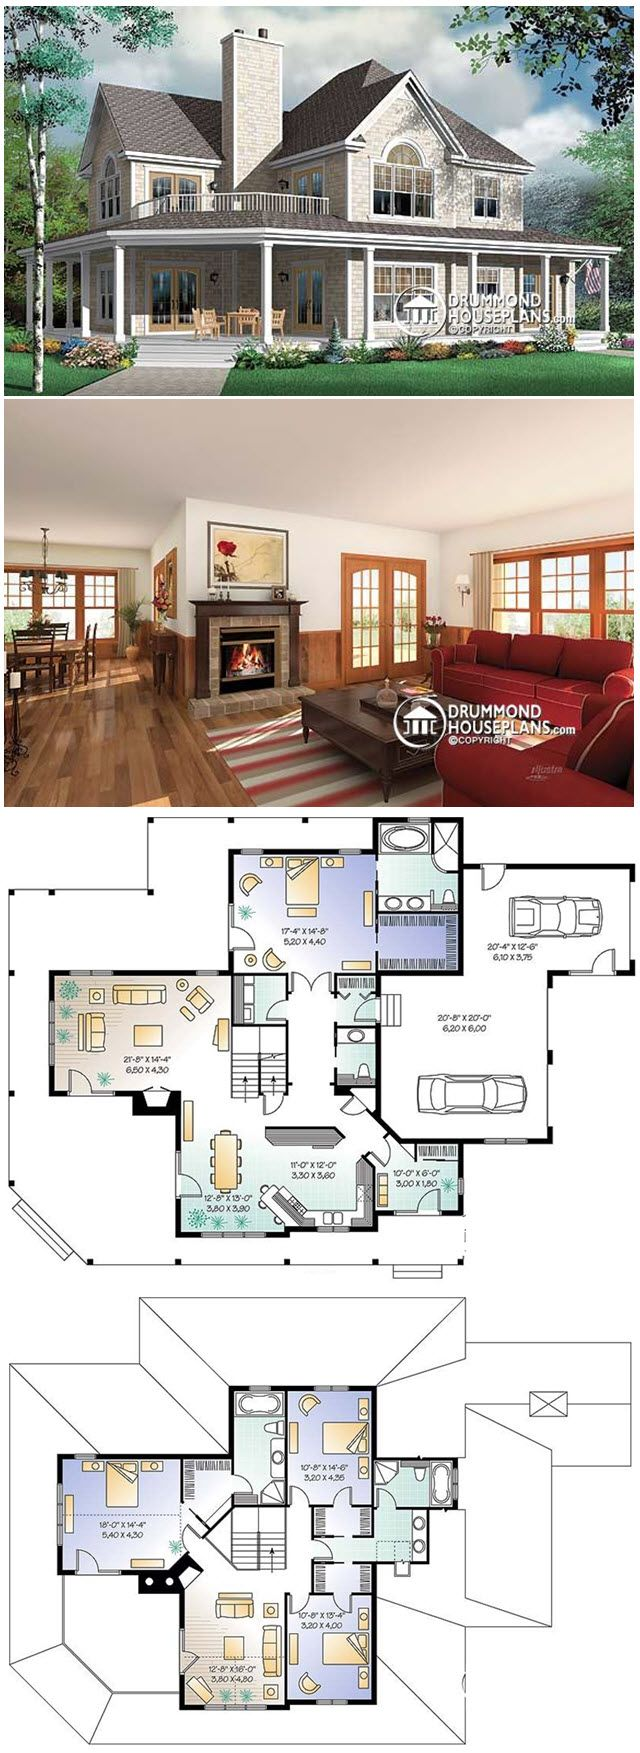 Sims houses layout house plans layouts best also design ideas images in diy for home rh pinterest